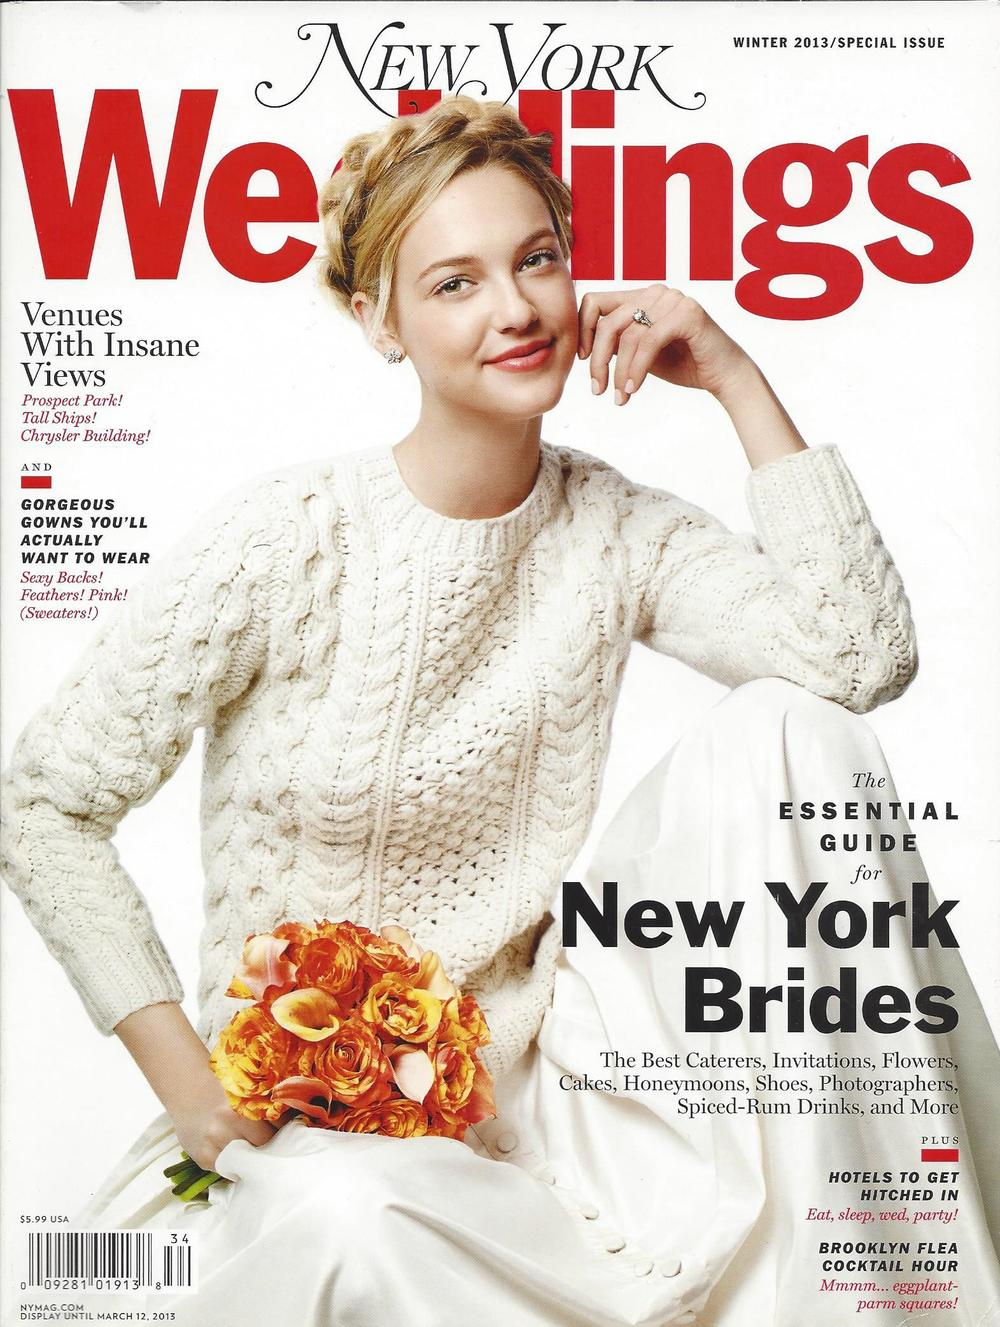 Ny Wedding cover.jpg